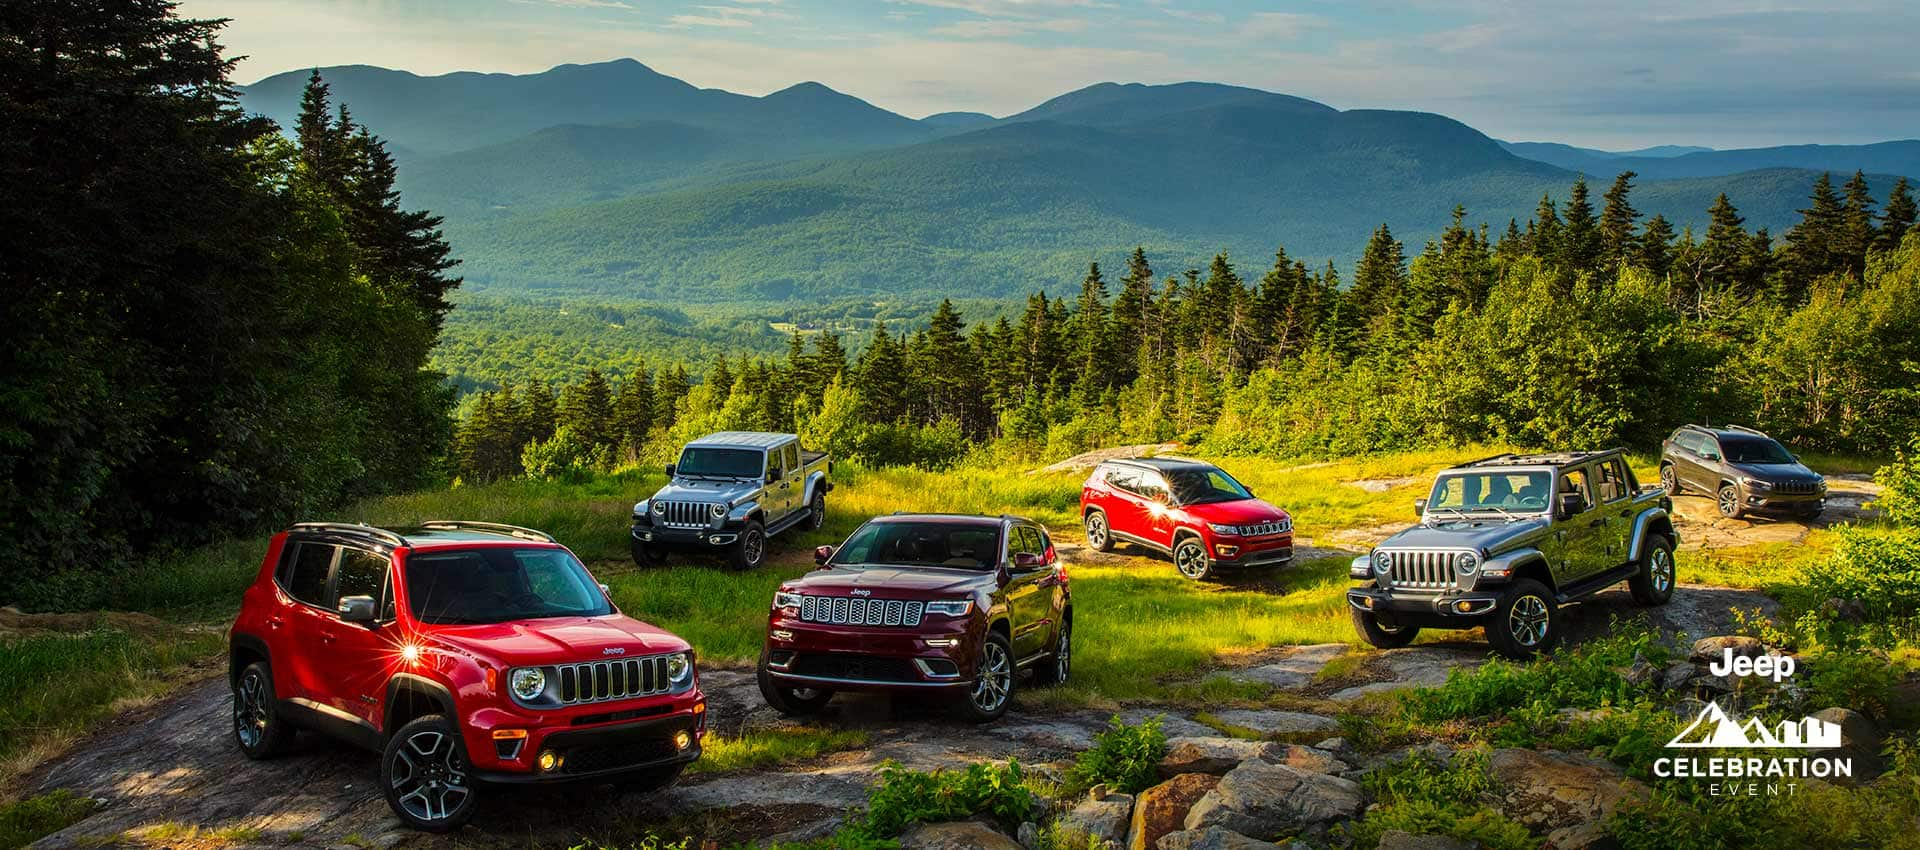 The 2021 Jeep Brand lineup parked on a rocky clearing in the mountains. In the front row, a Jeep Renegade Limited, Grand Cherokee Summit and Wrangler Sahara. In the back row, a Jeep Gladiator Overland, Compass Limited and Cherokee High Altitude. Jeep Celebration Logo.